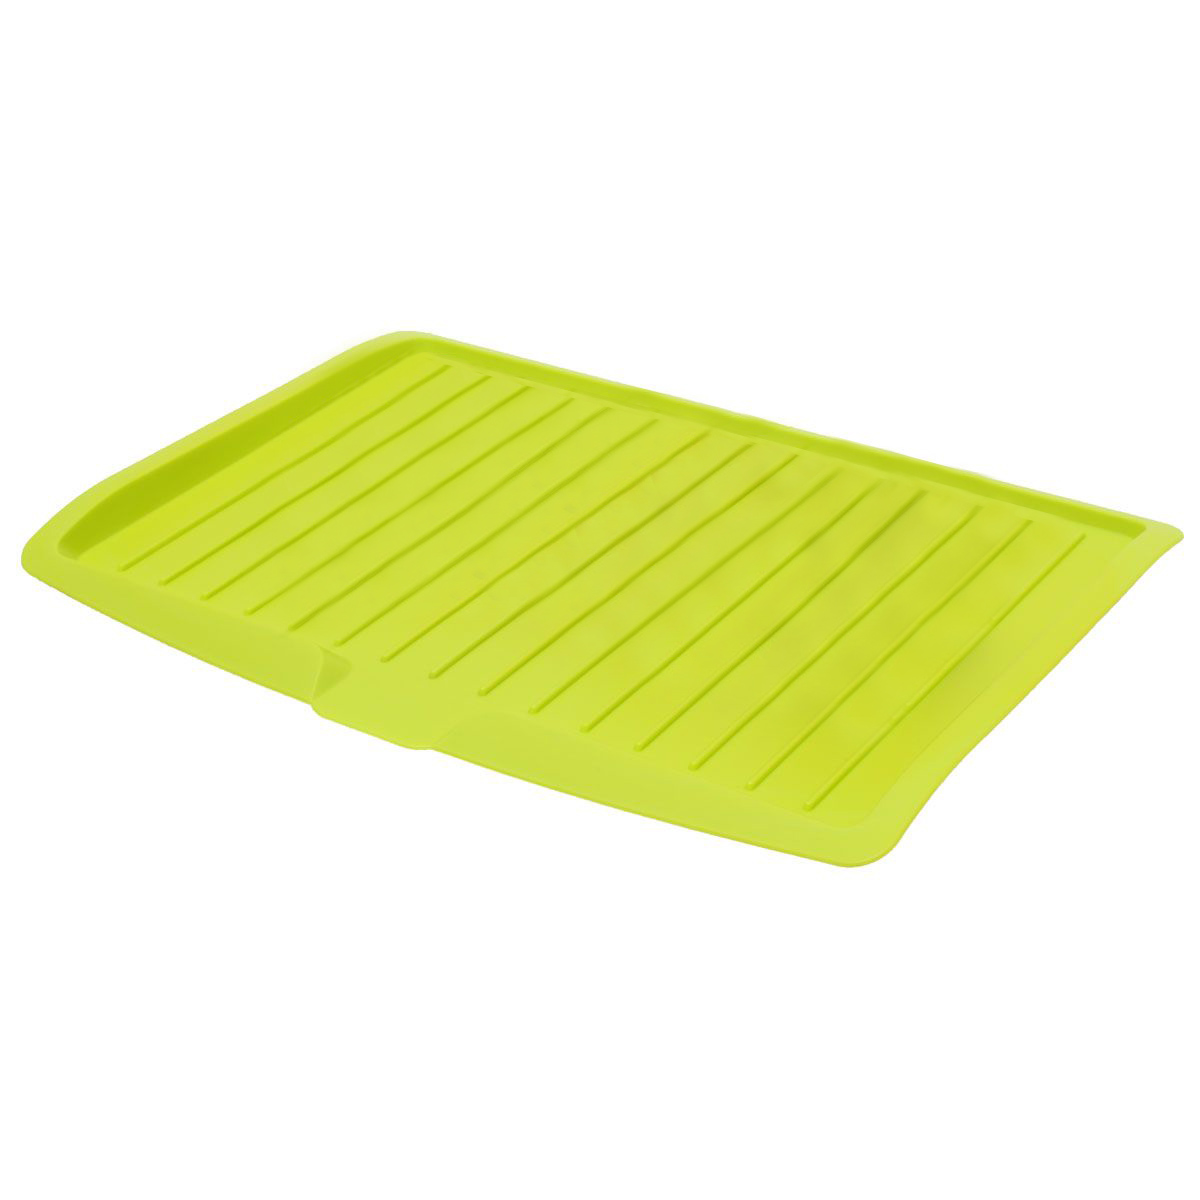 Plastic Dish Drainer Drip Tray Plate Cutlery Rack Kitchen Sink Rack Holder Large green